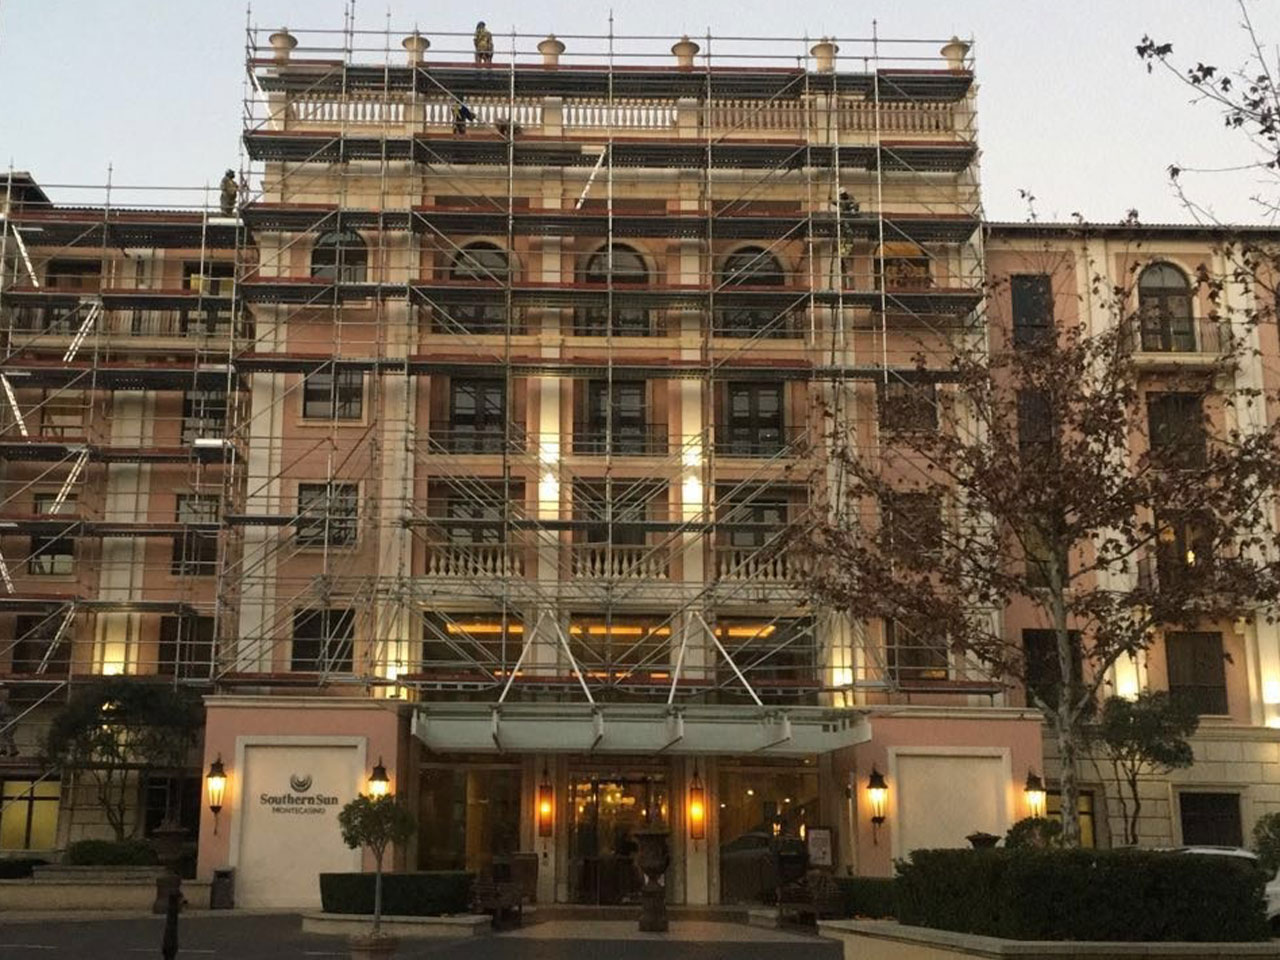 Scaffolding erection at The Southern Sun, Monte Casino